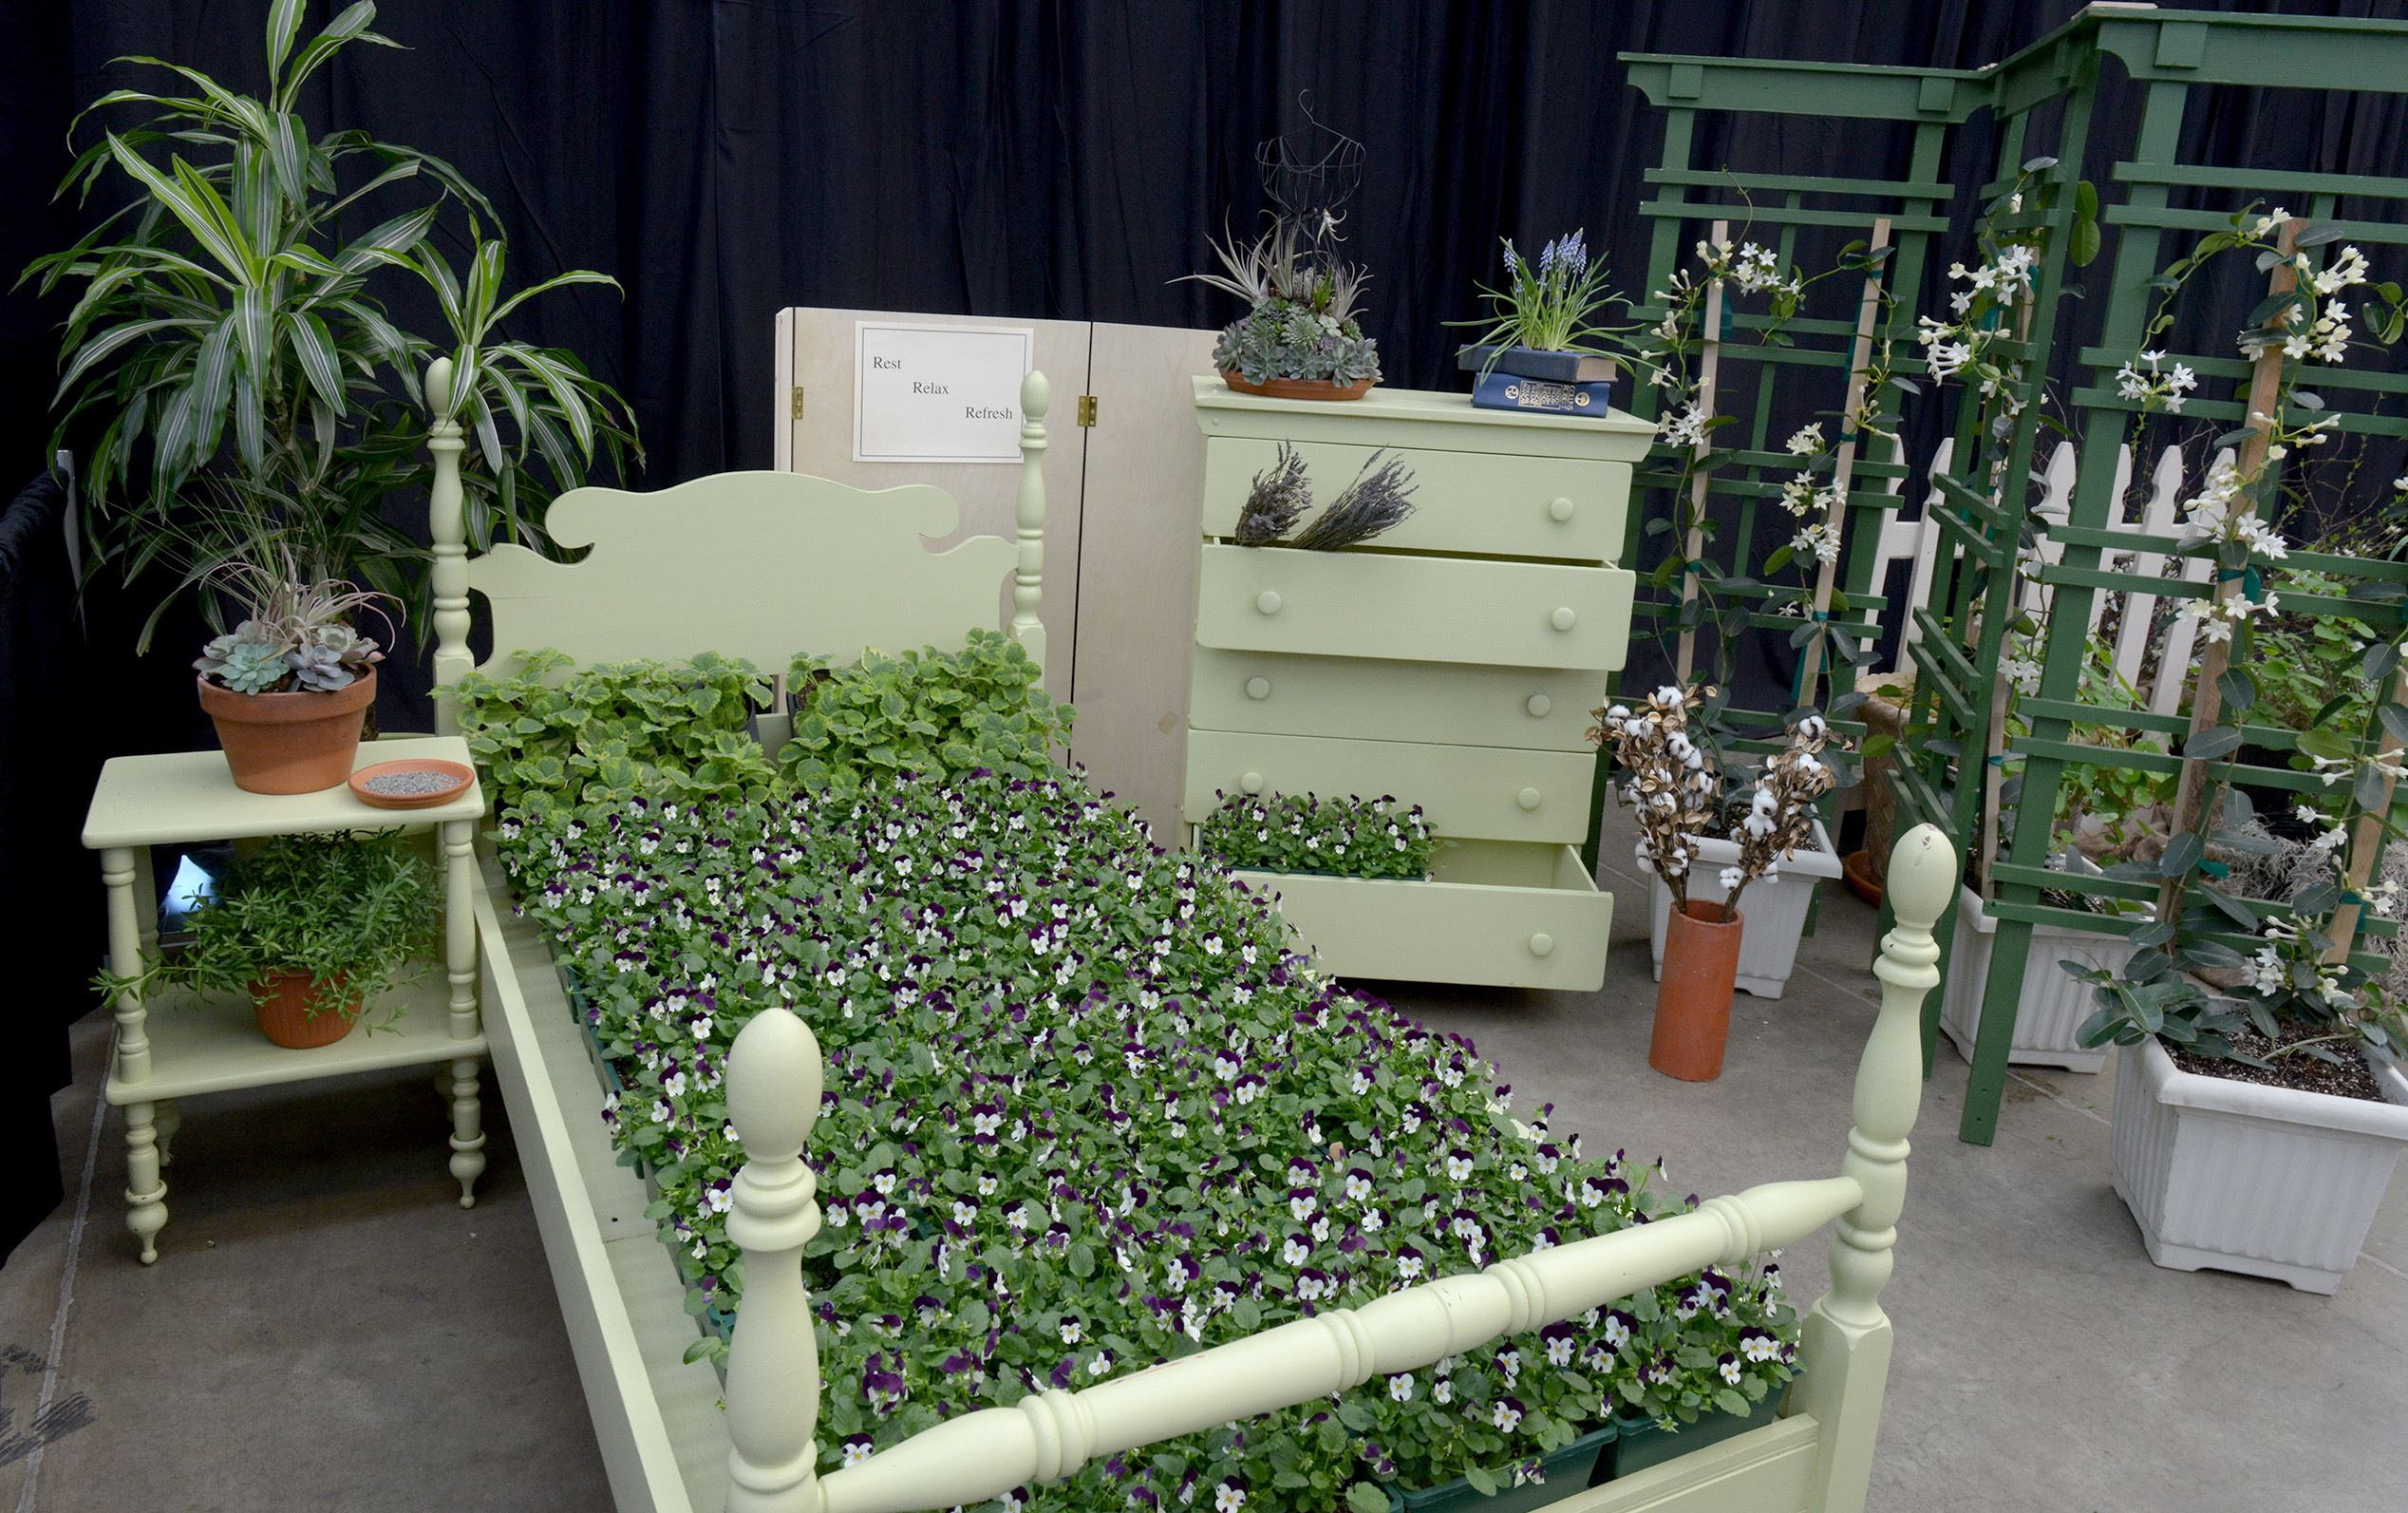 Bidwelltraining Center Garden Rooms In Bloom At Home Garden Show Pittsburgh Post Gazette